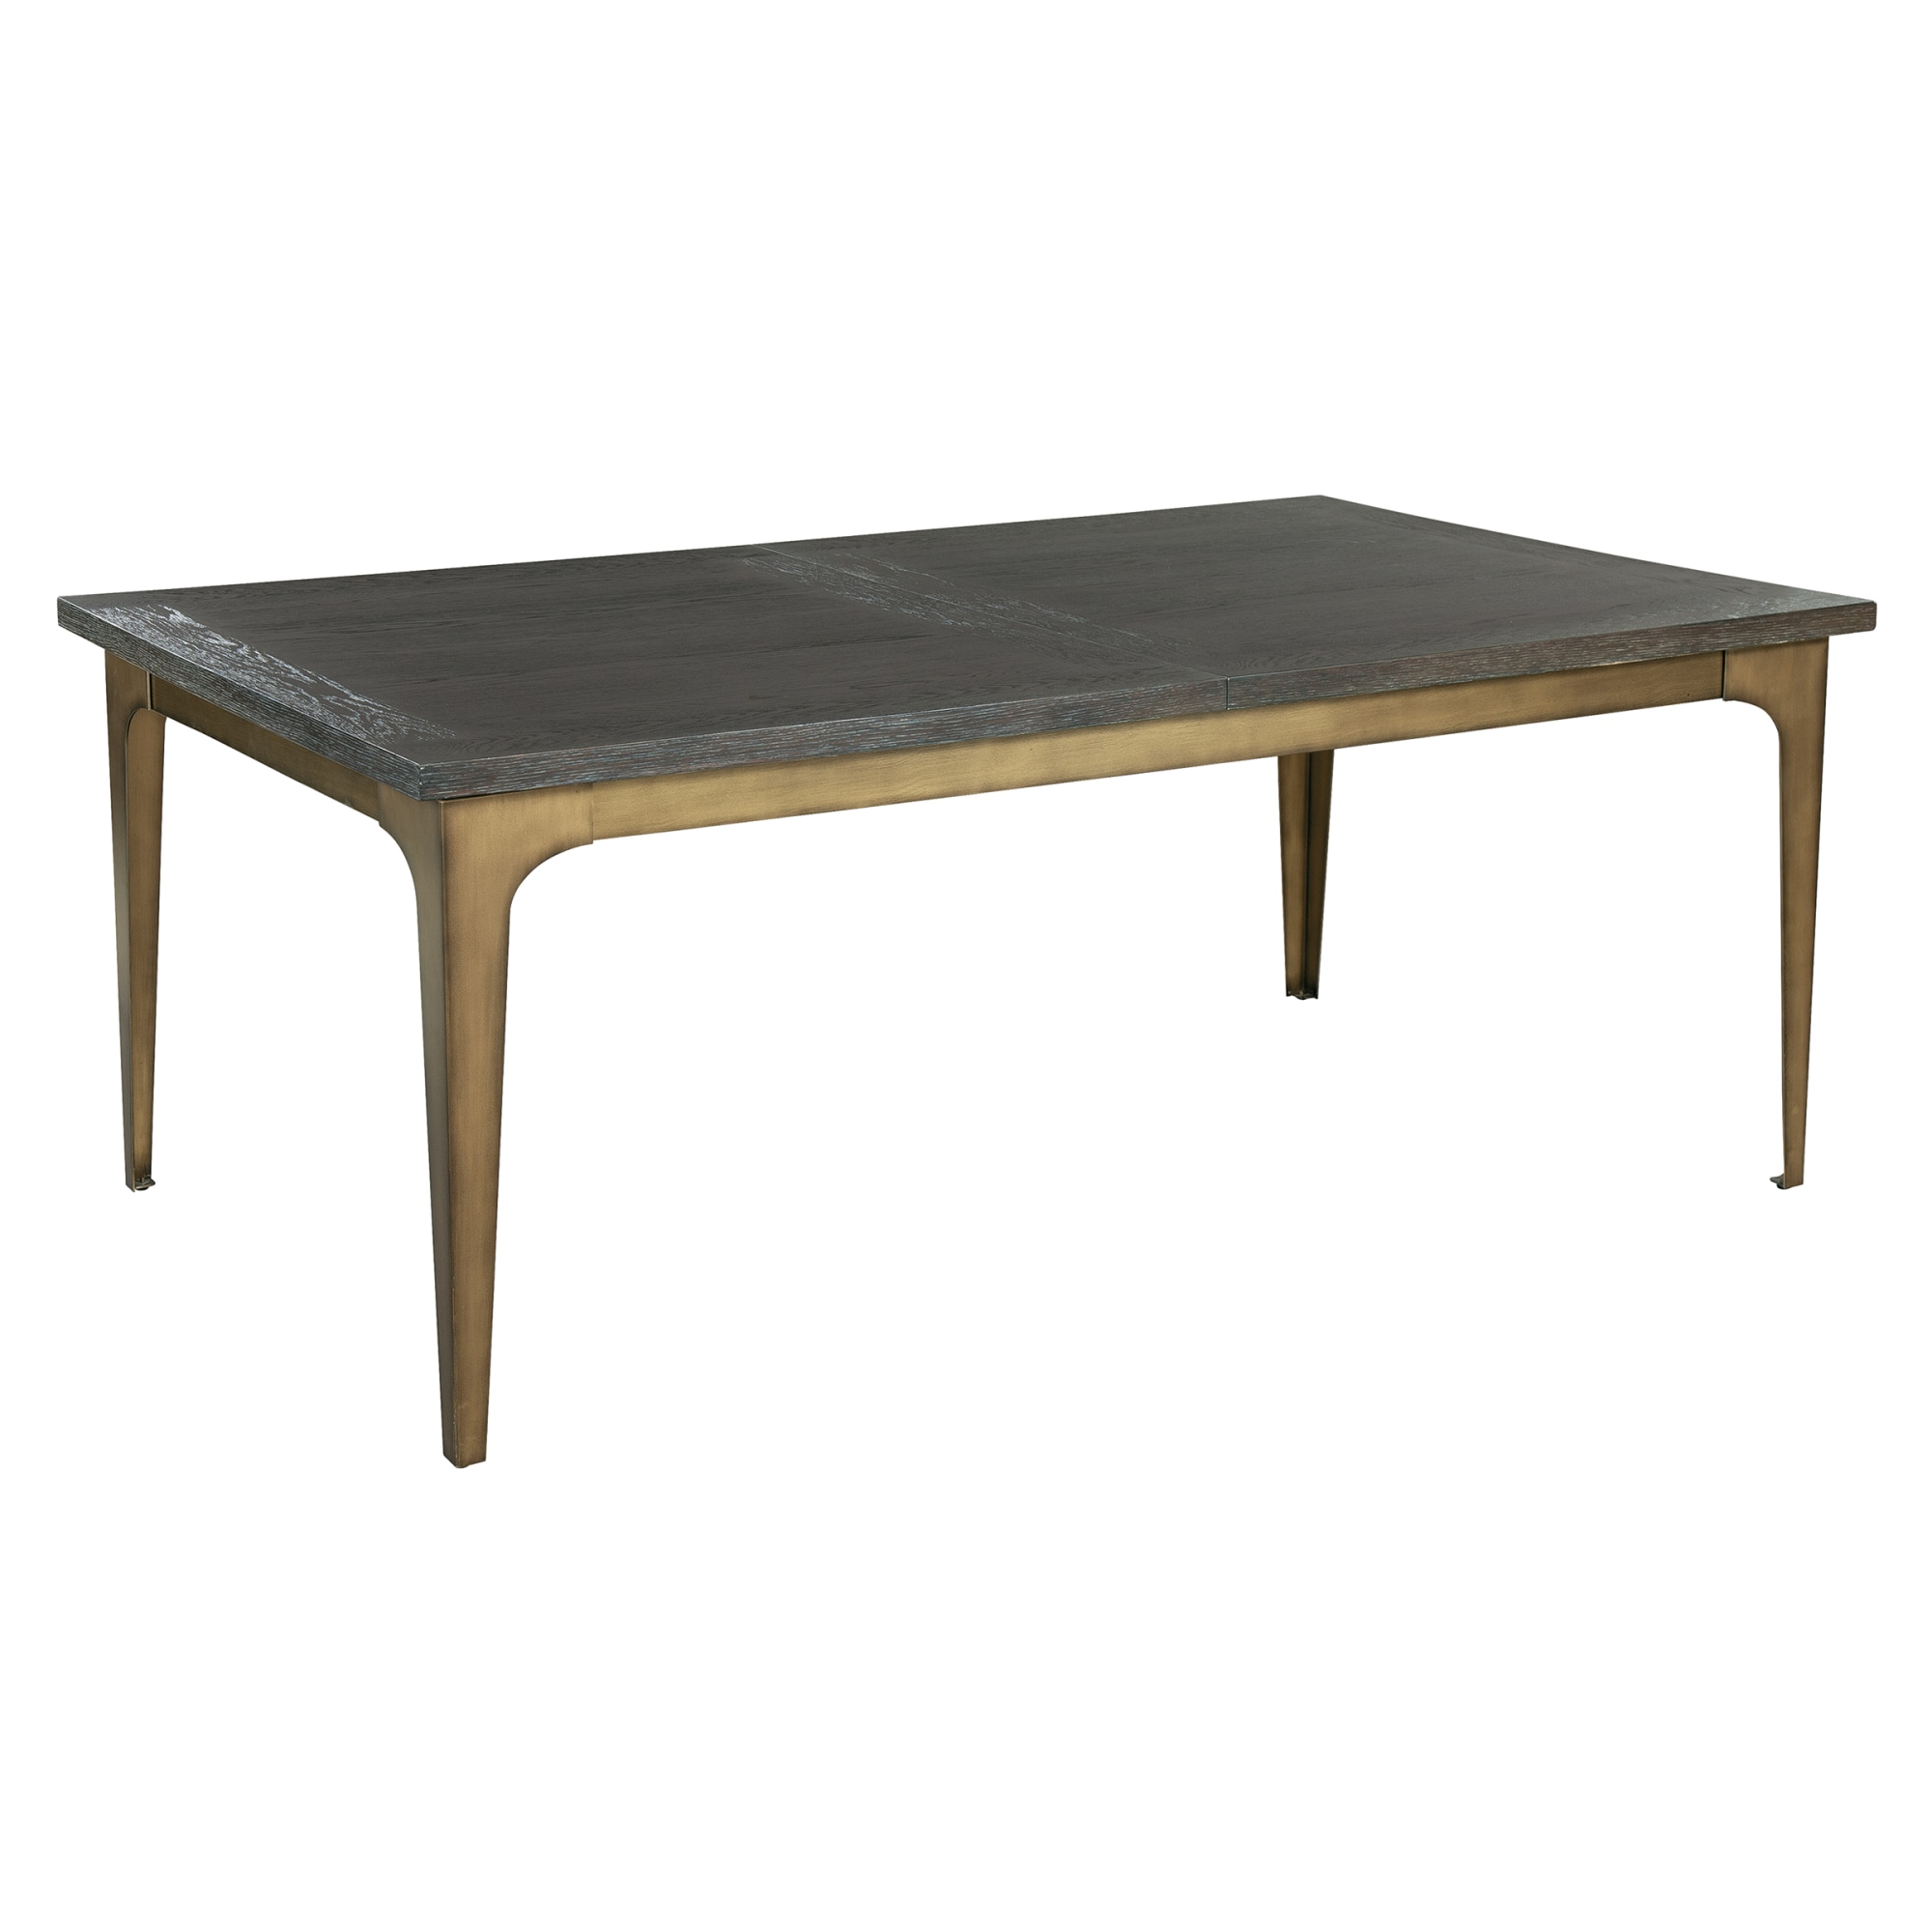 Image for 2-3820 Edgewater Rectangular Dining Table from Hekman Official Website